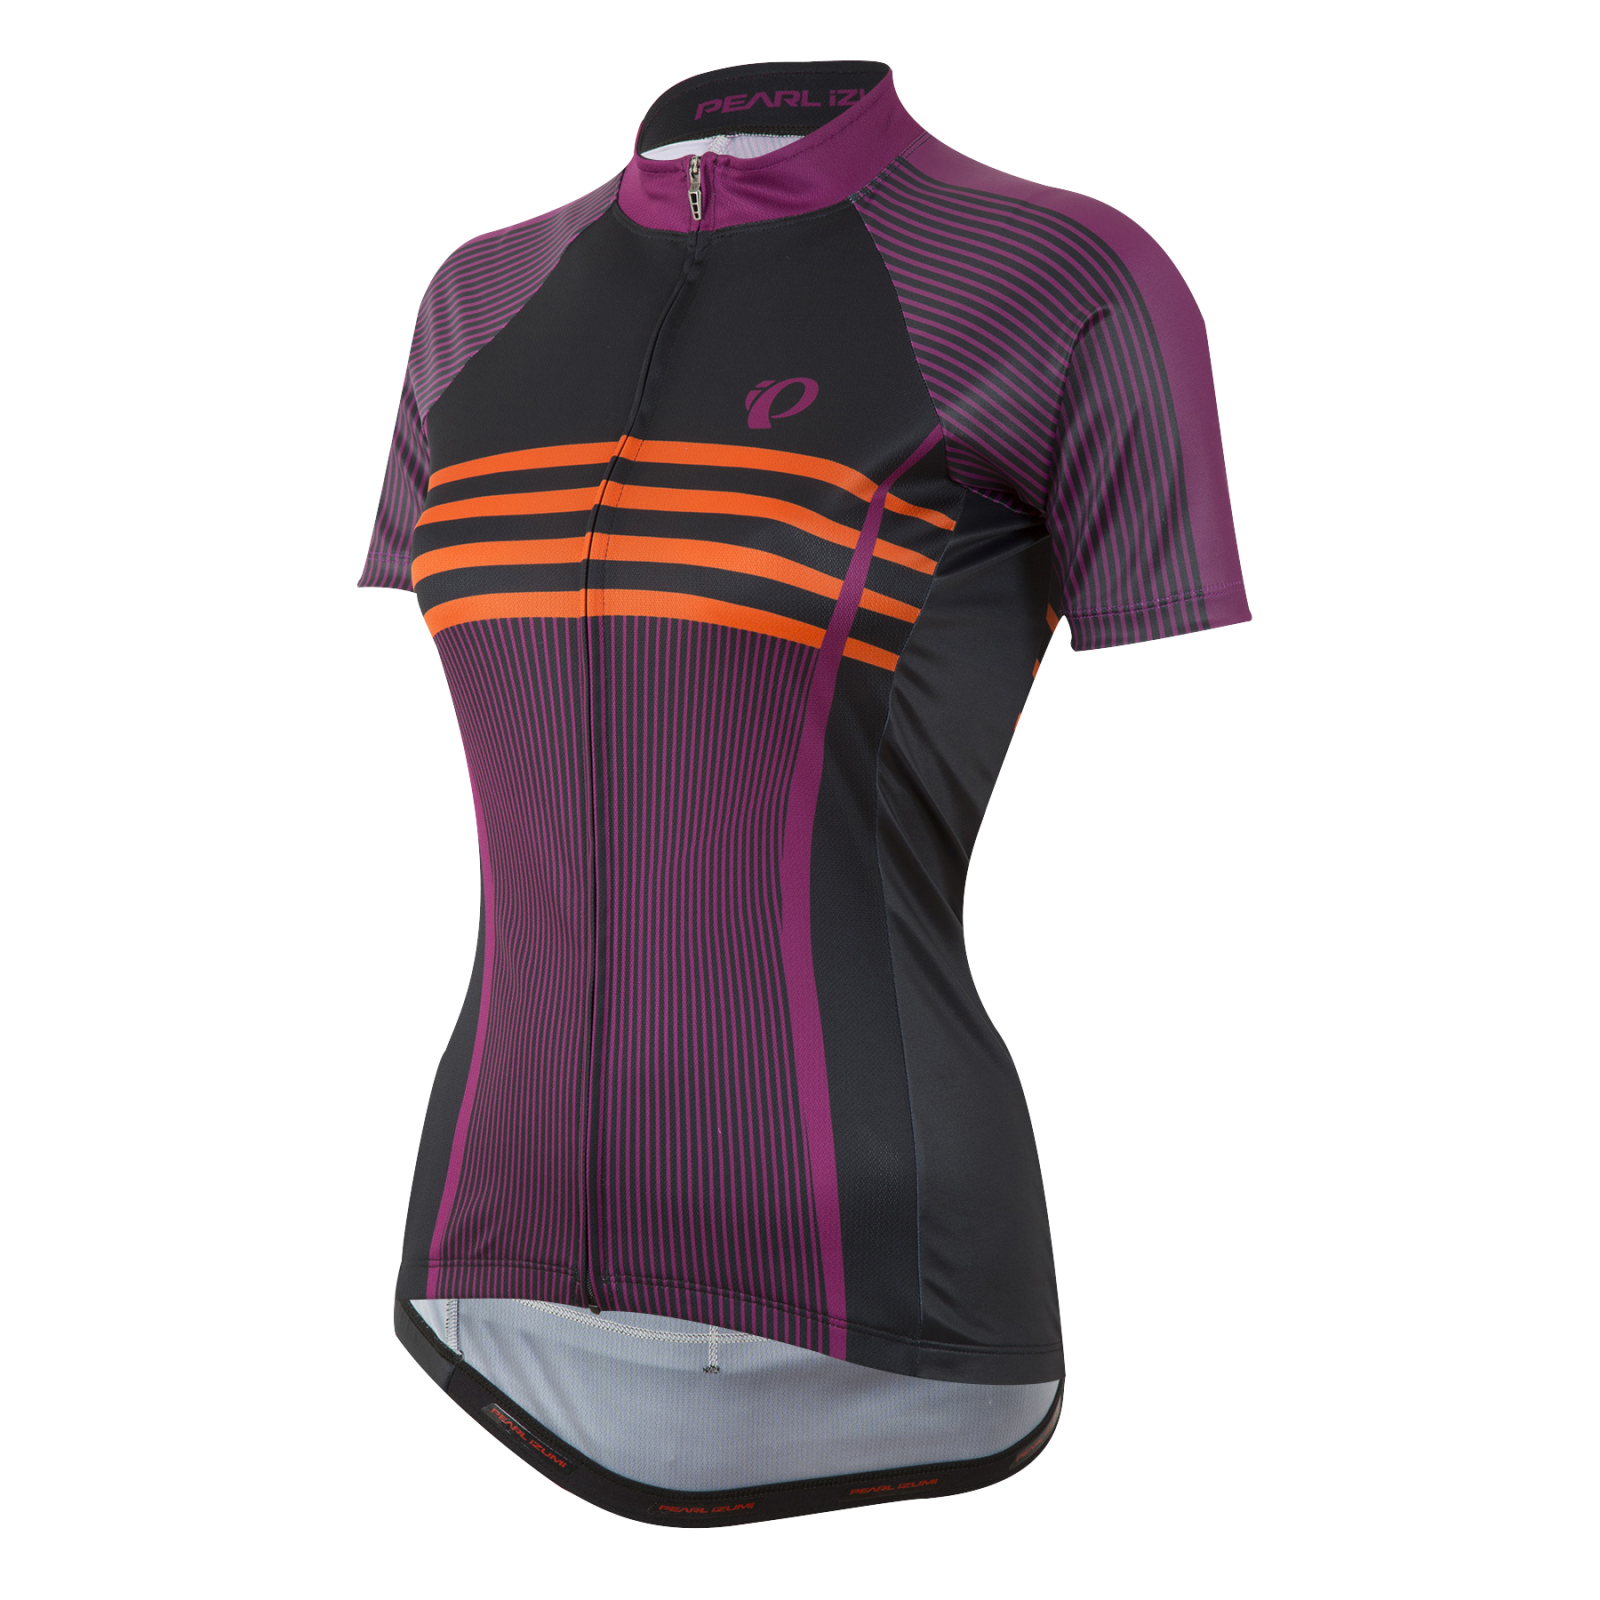 PEARL iZUMi W ELITE GRAPHIC dres, CLASSIC PURPLE WINE, M